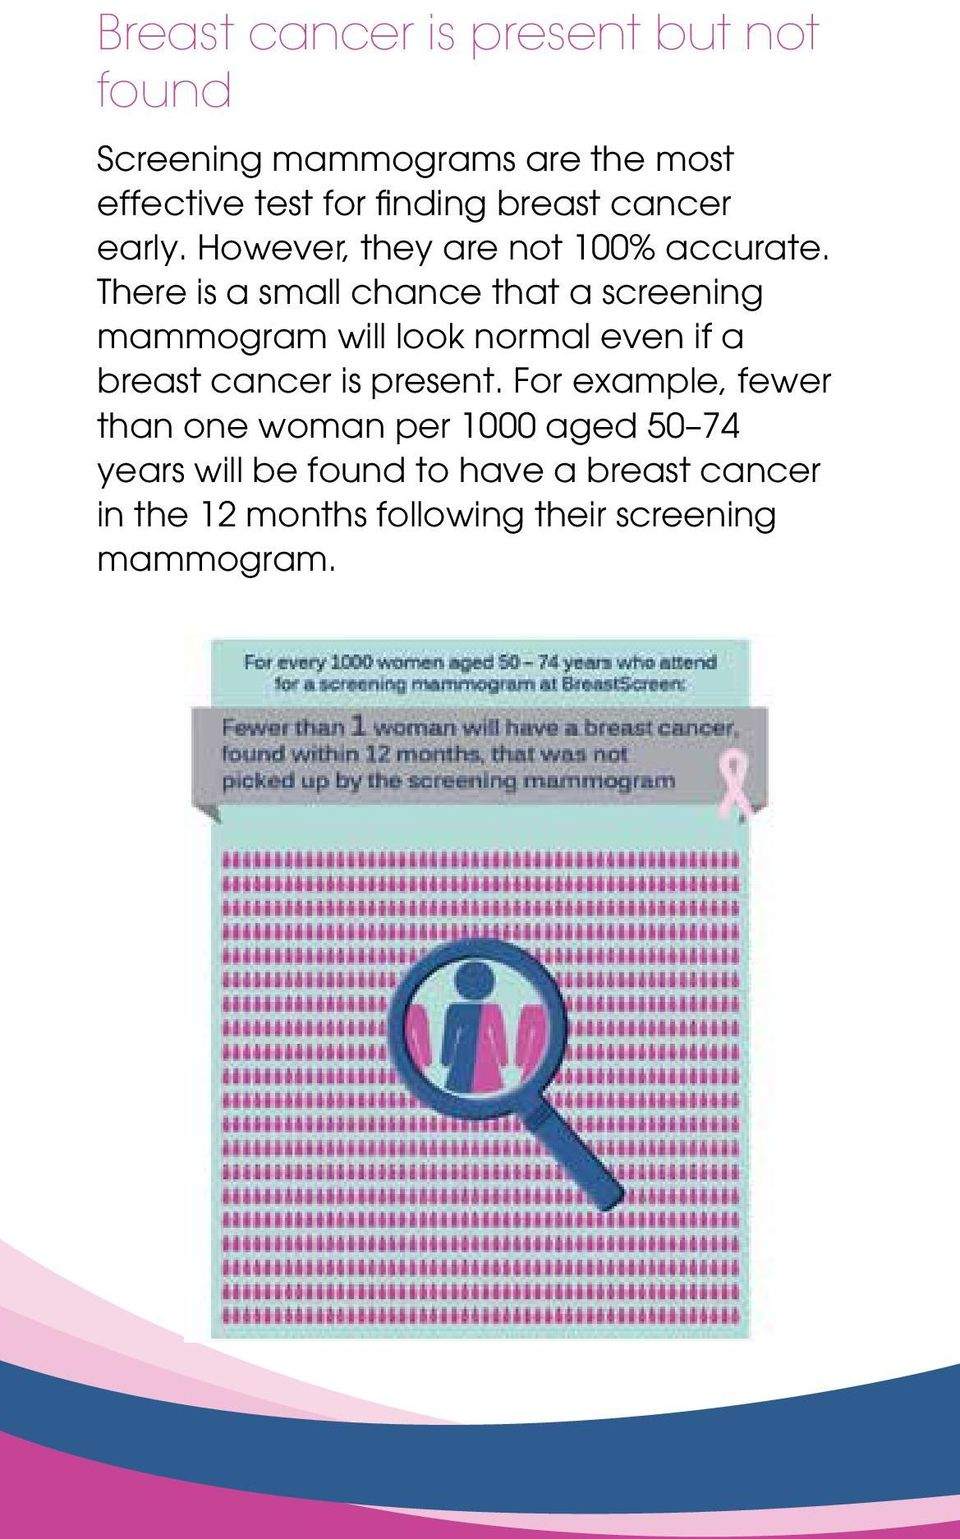 There is a small chance that a screening mammogram will look normal even if a breast cancer is present.